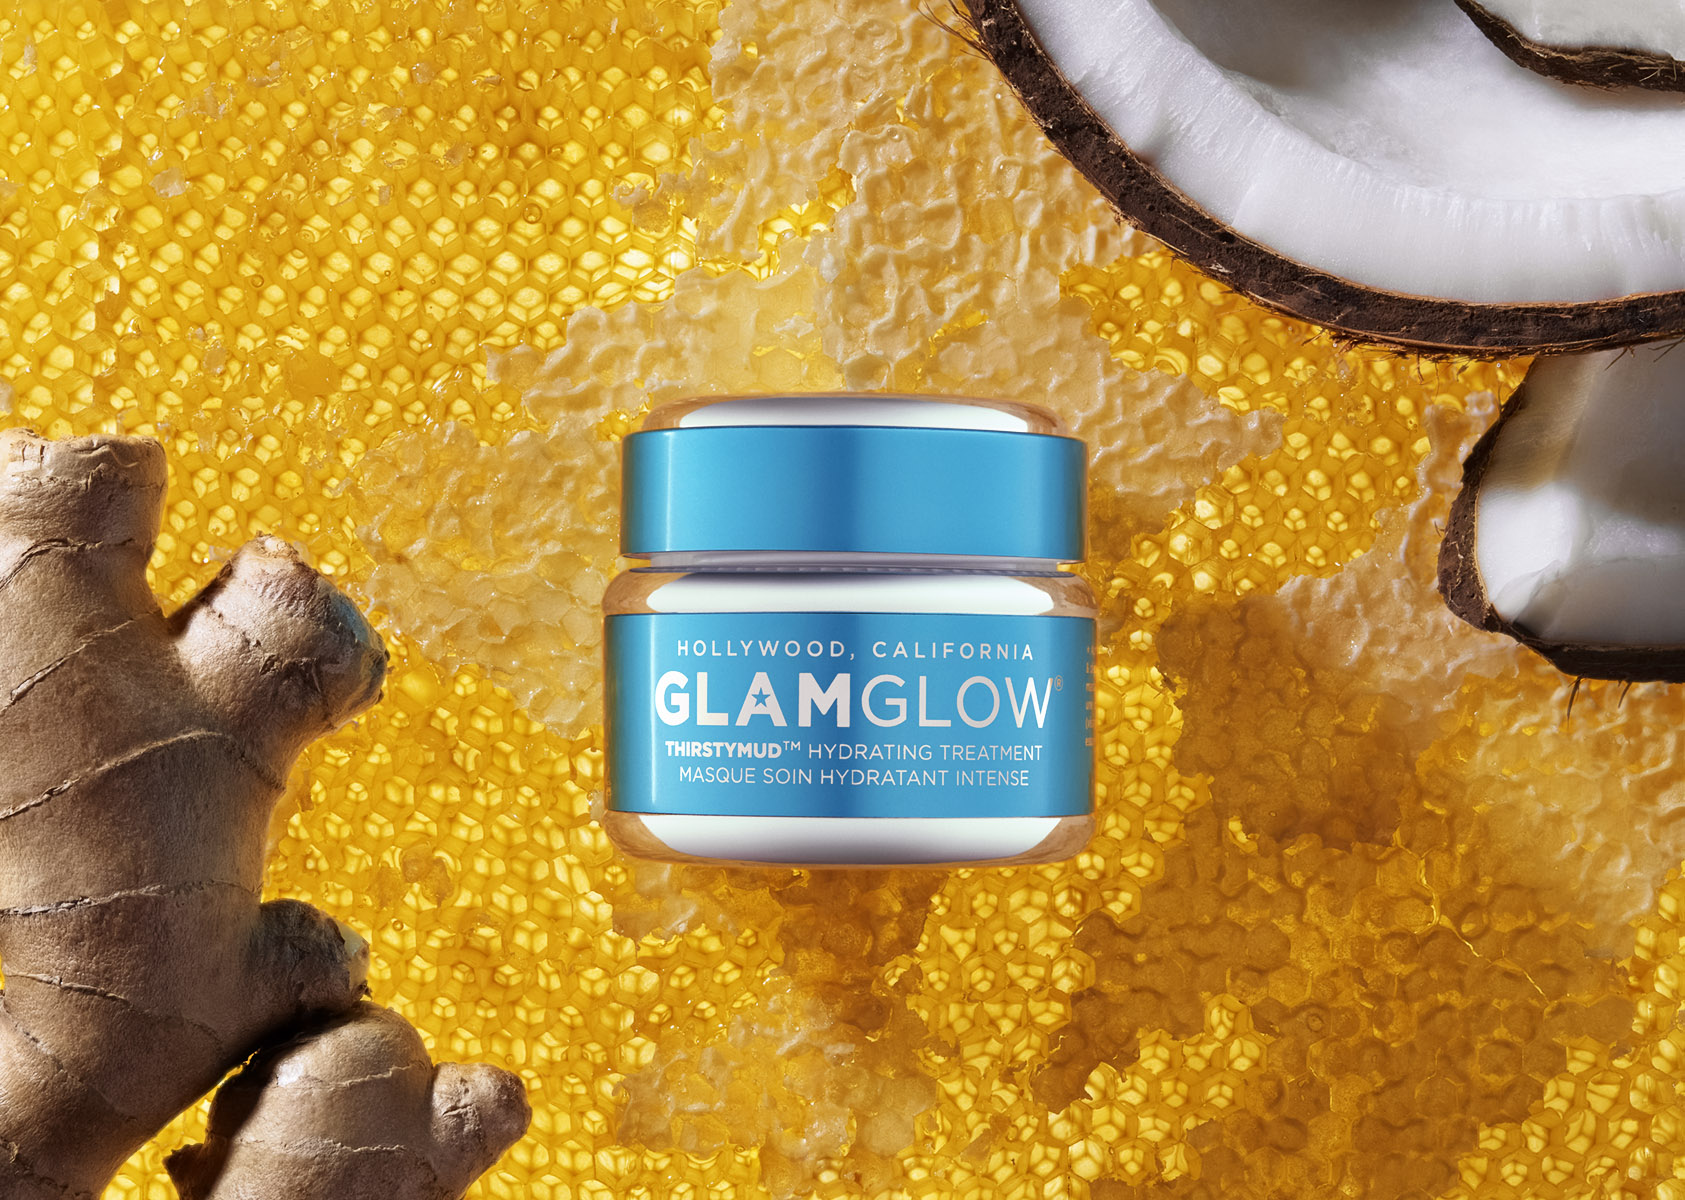 GLAMGLOW_PRODUCT_THIRSTYMUD_BMS_R1_2